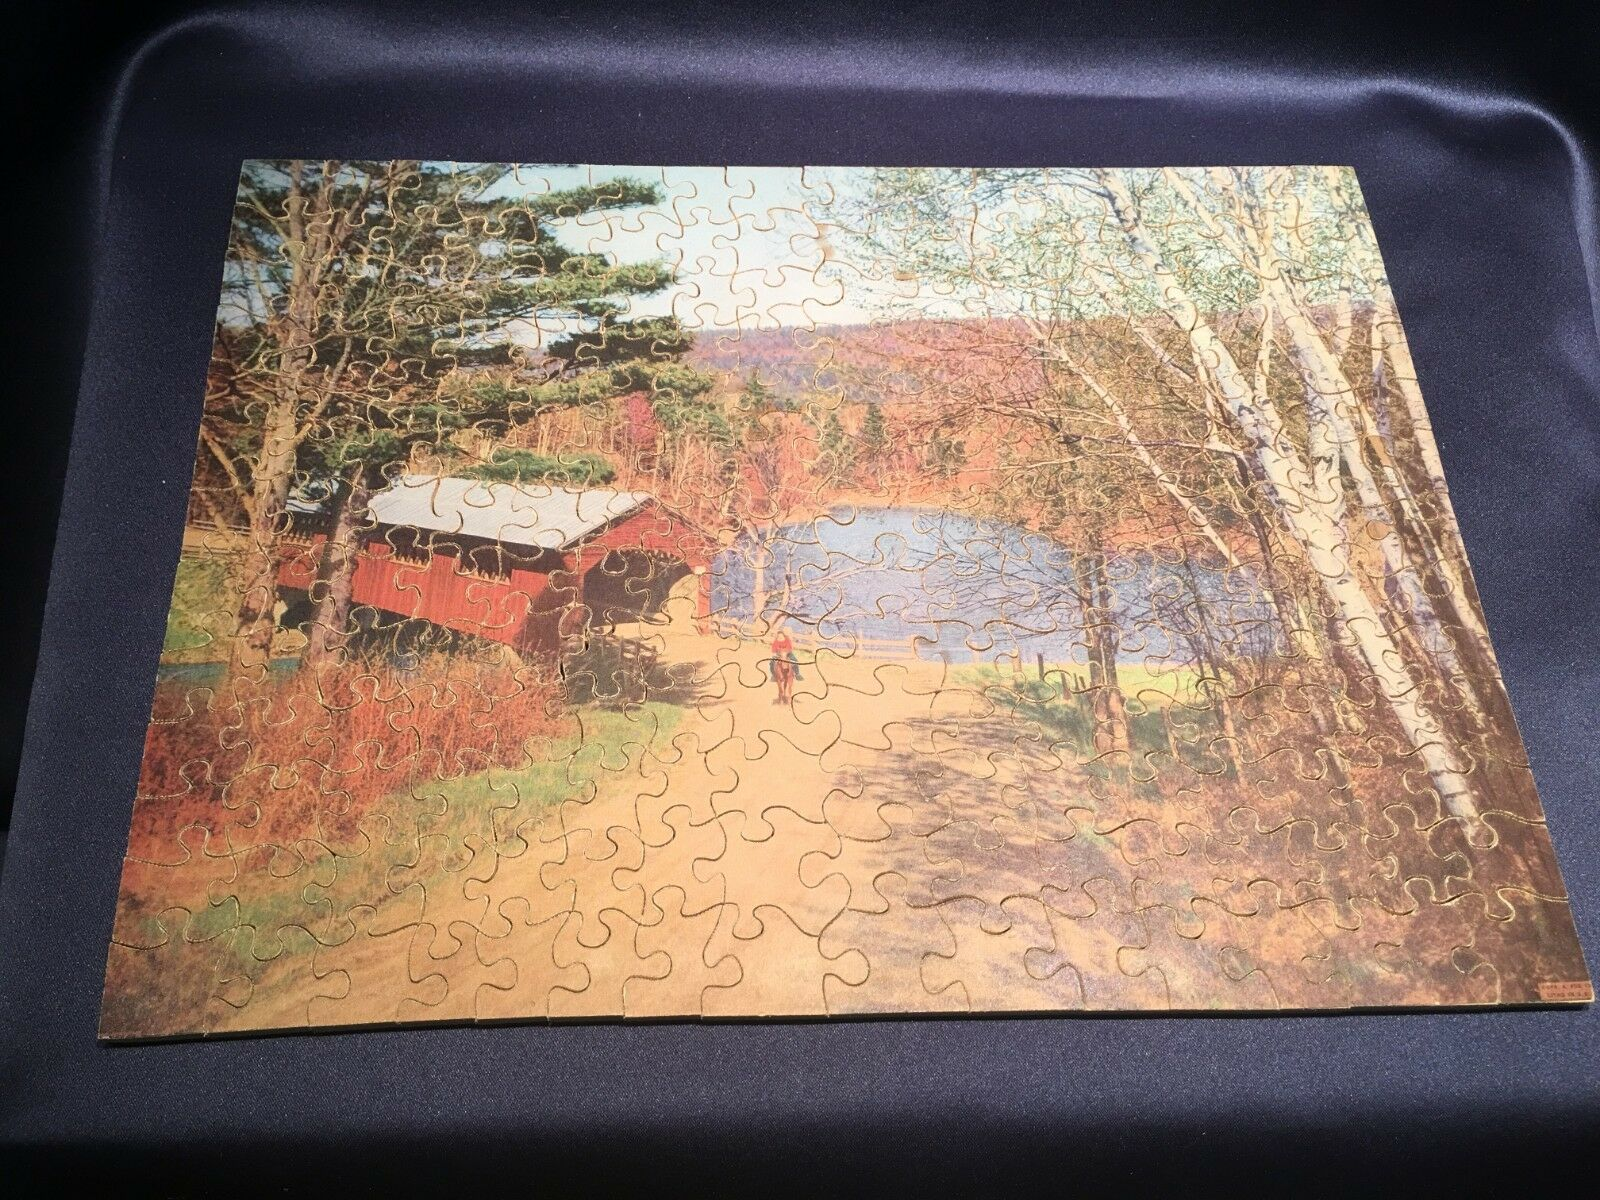 C1940 Straus Wooden Jigsaw Puzzle 200pc The Old Landmark Landmark Landmark Original Box Complete c0a509